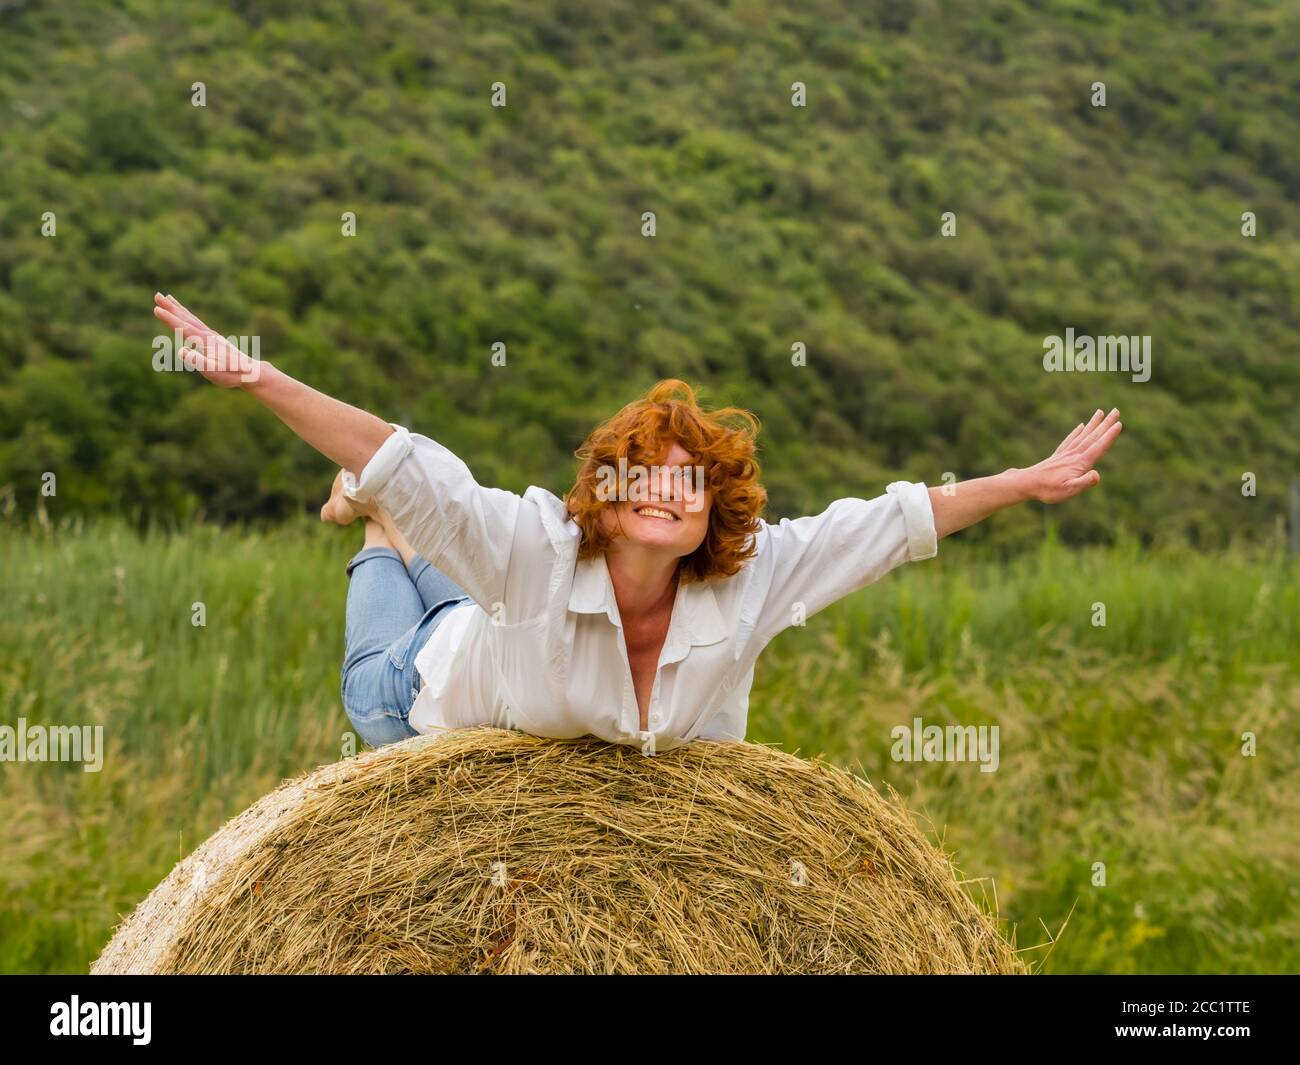 Redhaired woman on hay haystack prone pretending to fly flying spreading spread hands arms away eyeshot eyes eye contact looking at camera Stock Photo